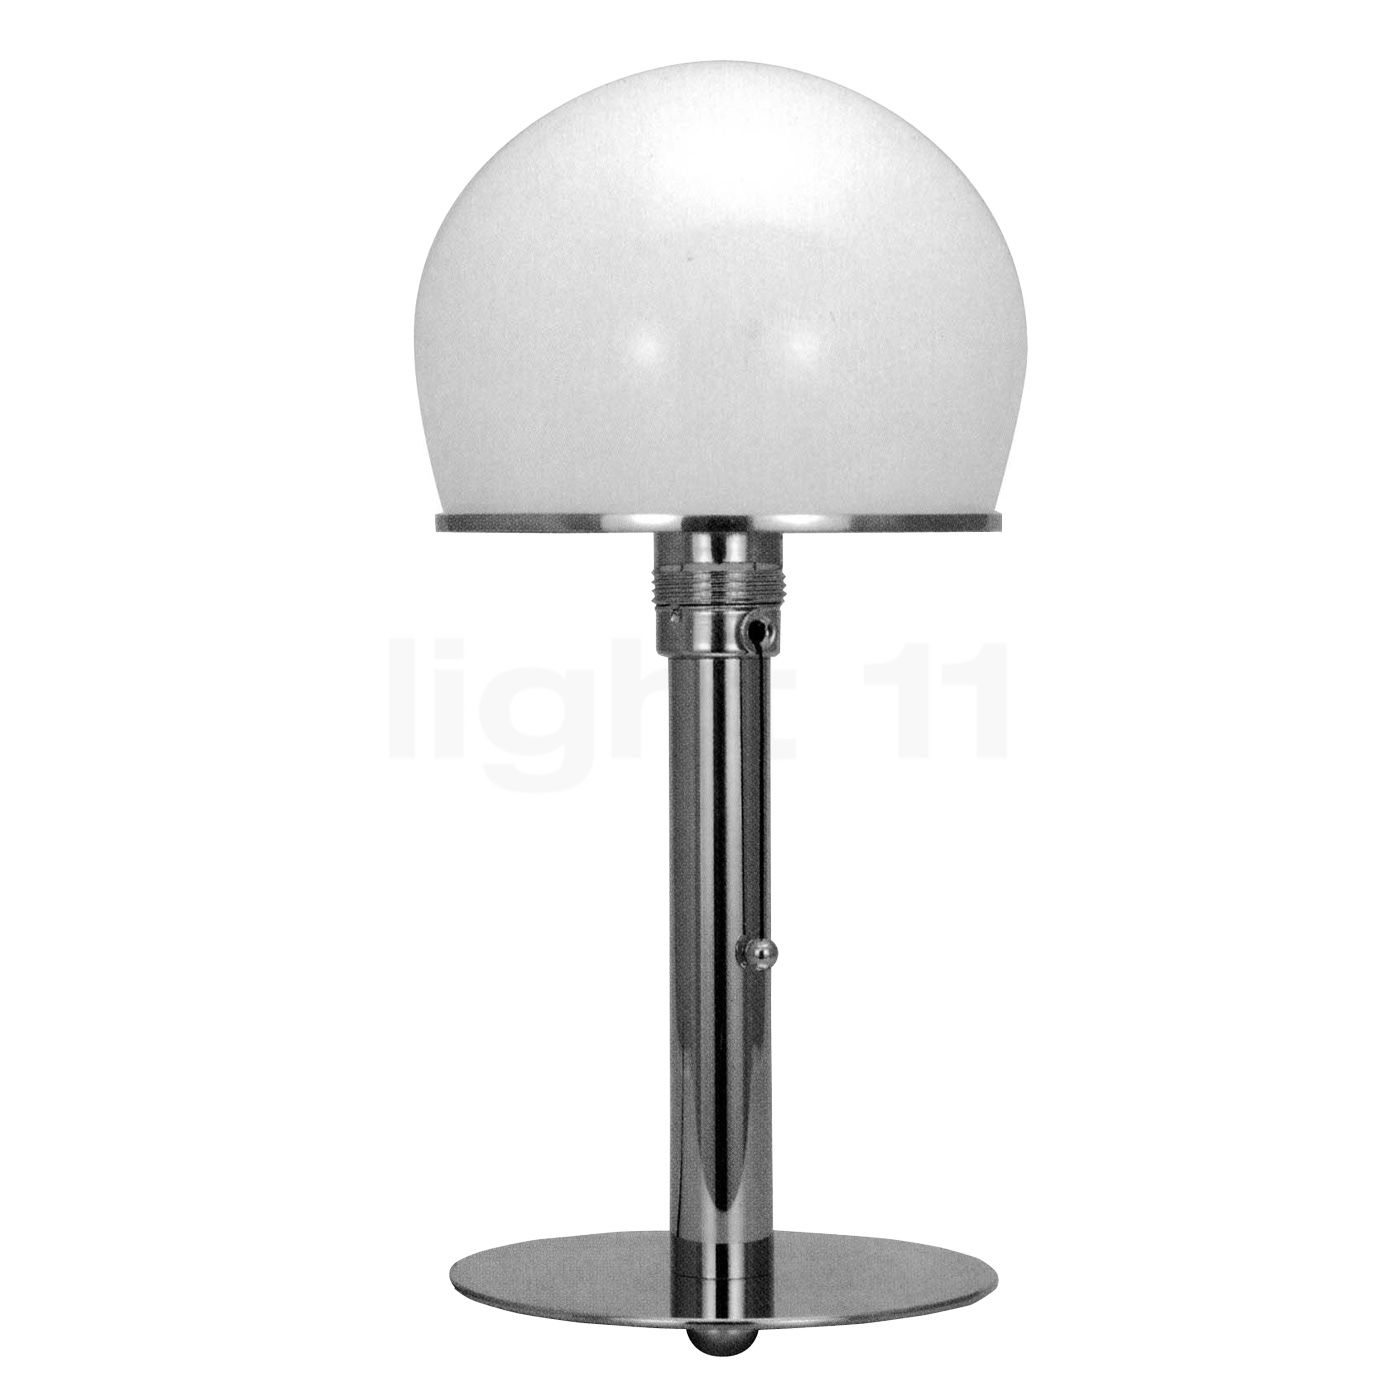 Buy tecnolumen spare parts glass ball for wagenfeld lamps at mozeypictures Gallery